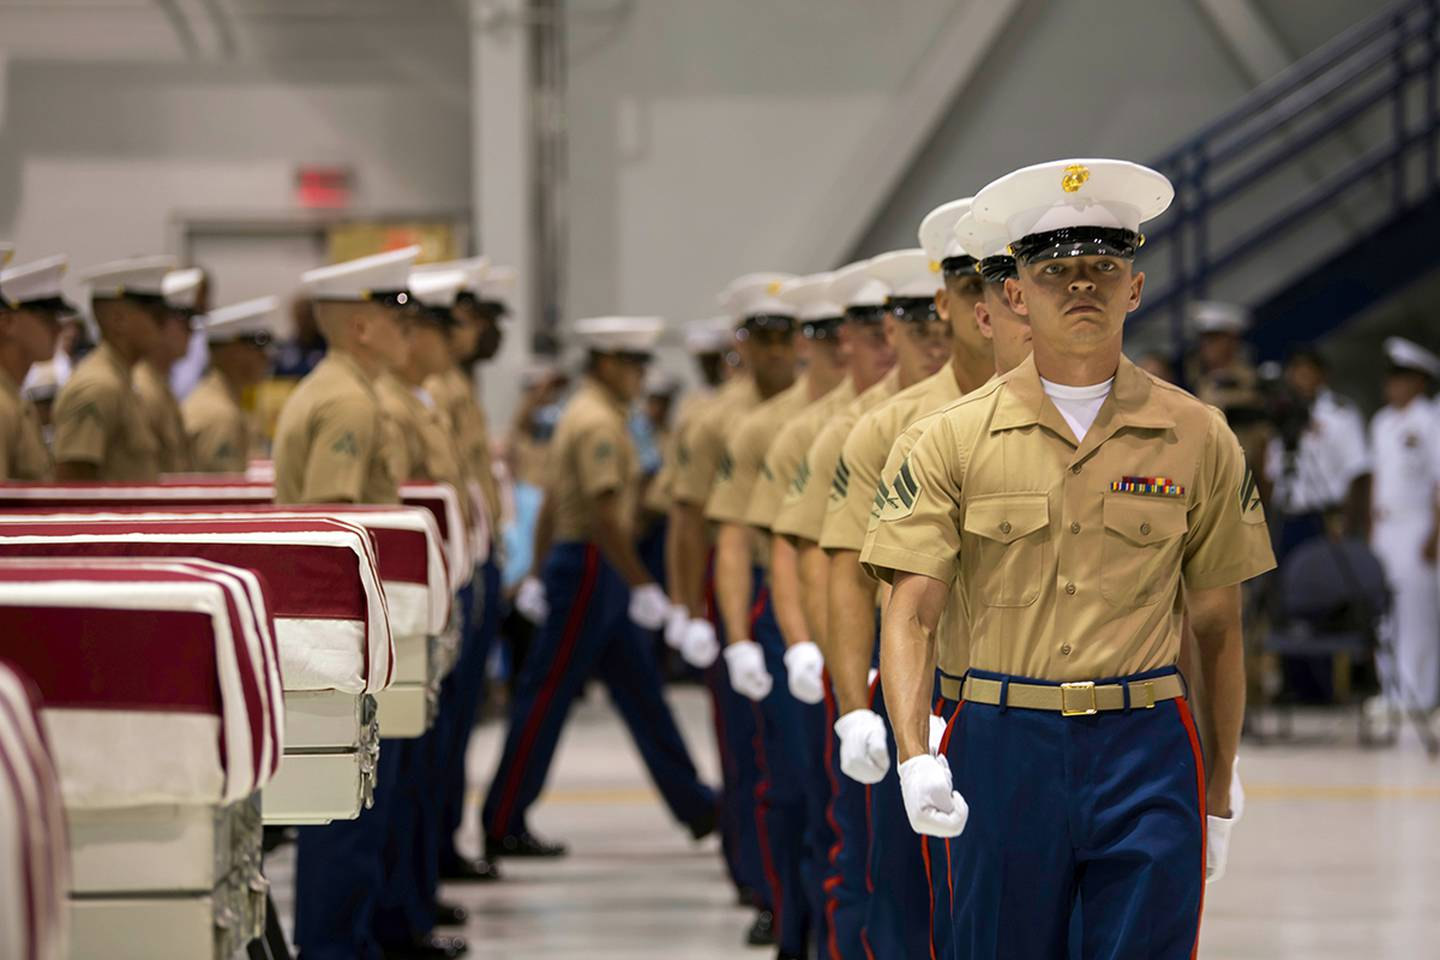 In this Wednesday, July 17, 2019 photo, Marines march past transfer cases carrying the possible remains of unidentified service members lost in the Battle of Tarawa during World War II in a hangar at Joint Base Pearl Harbor-Hickam in Hawaii.